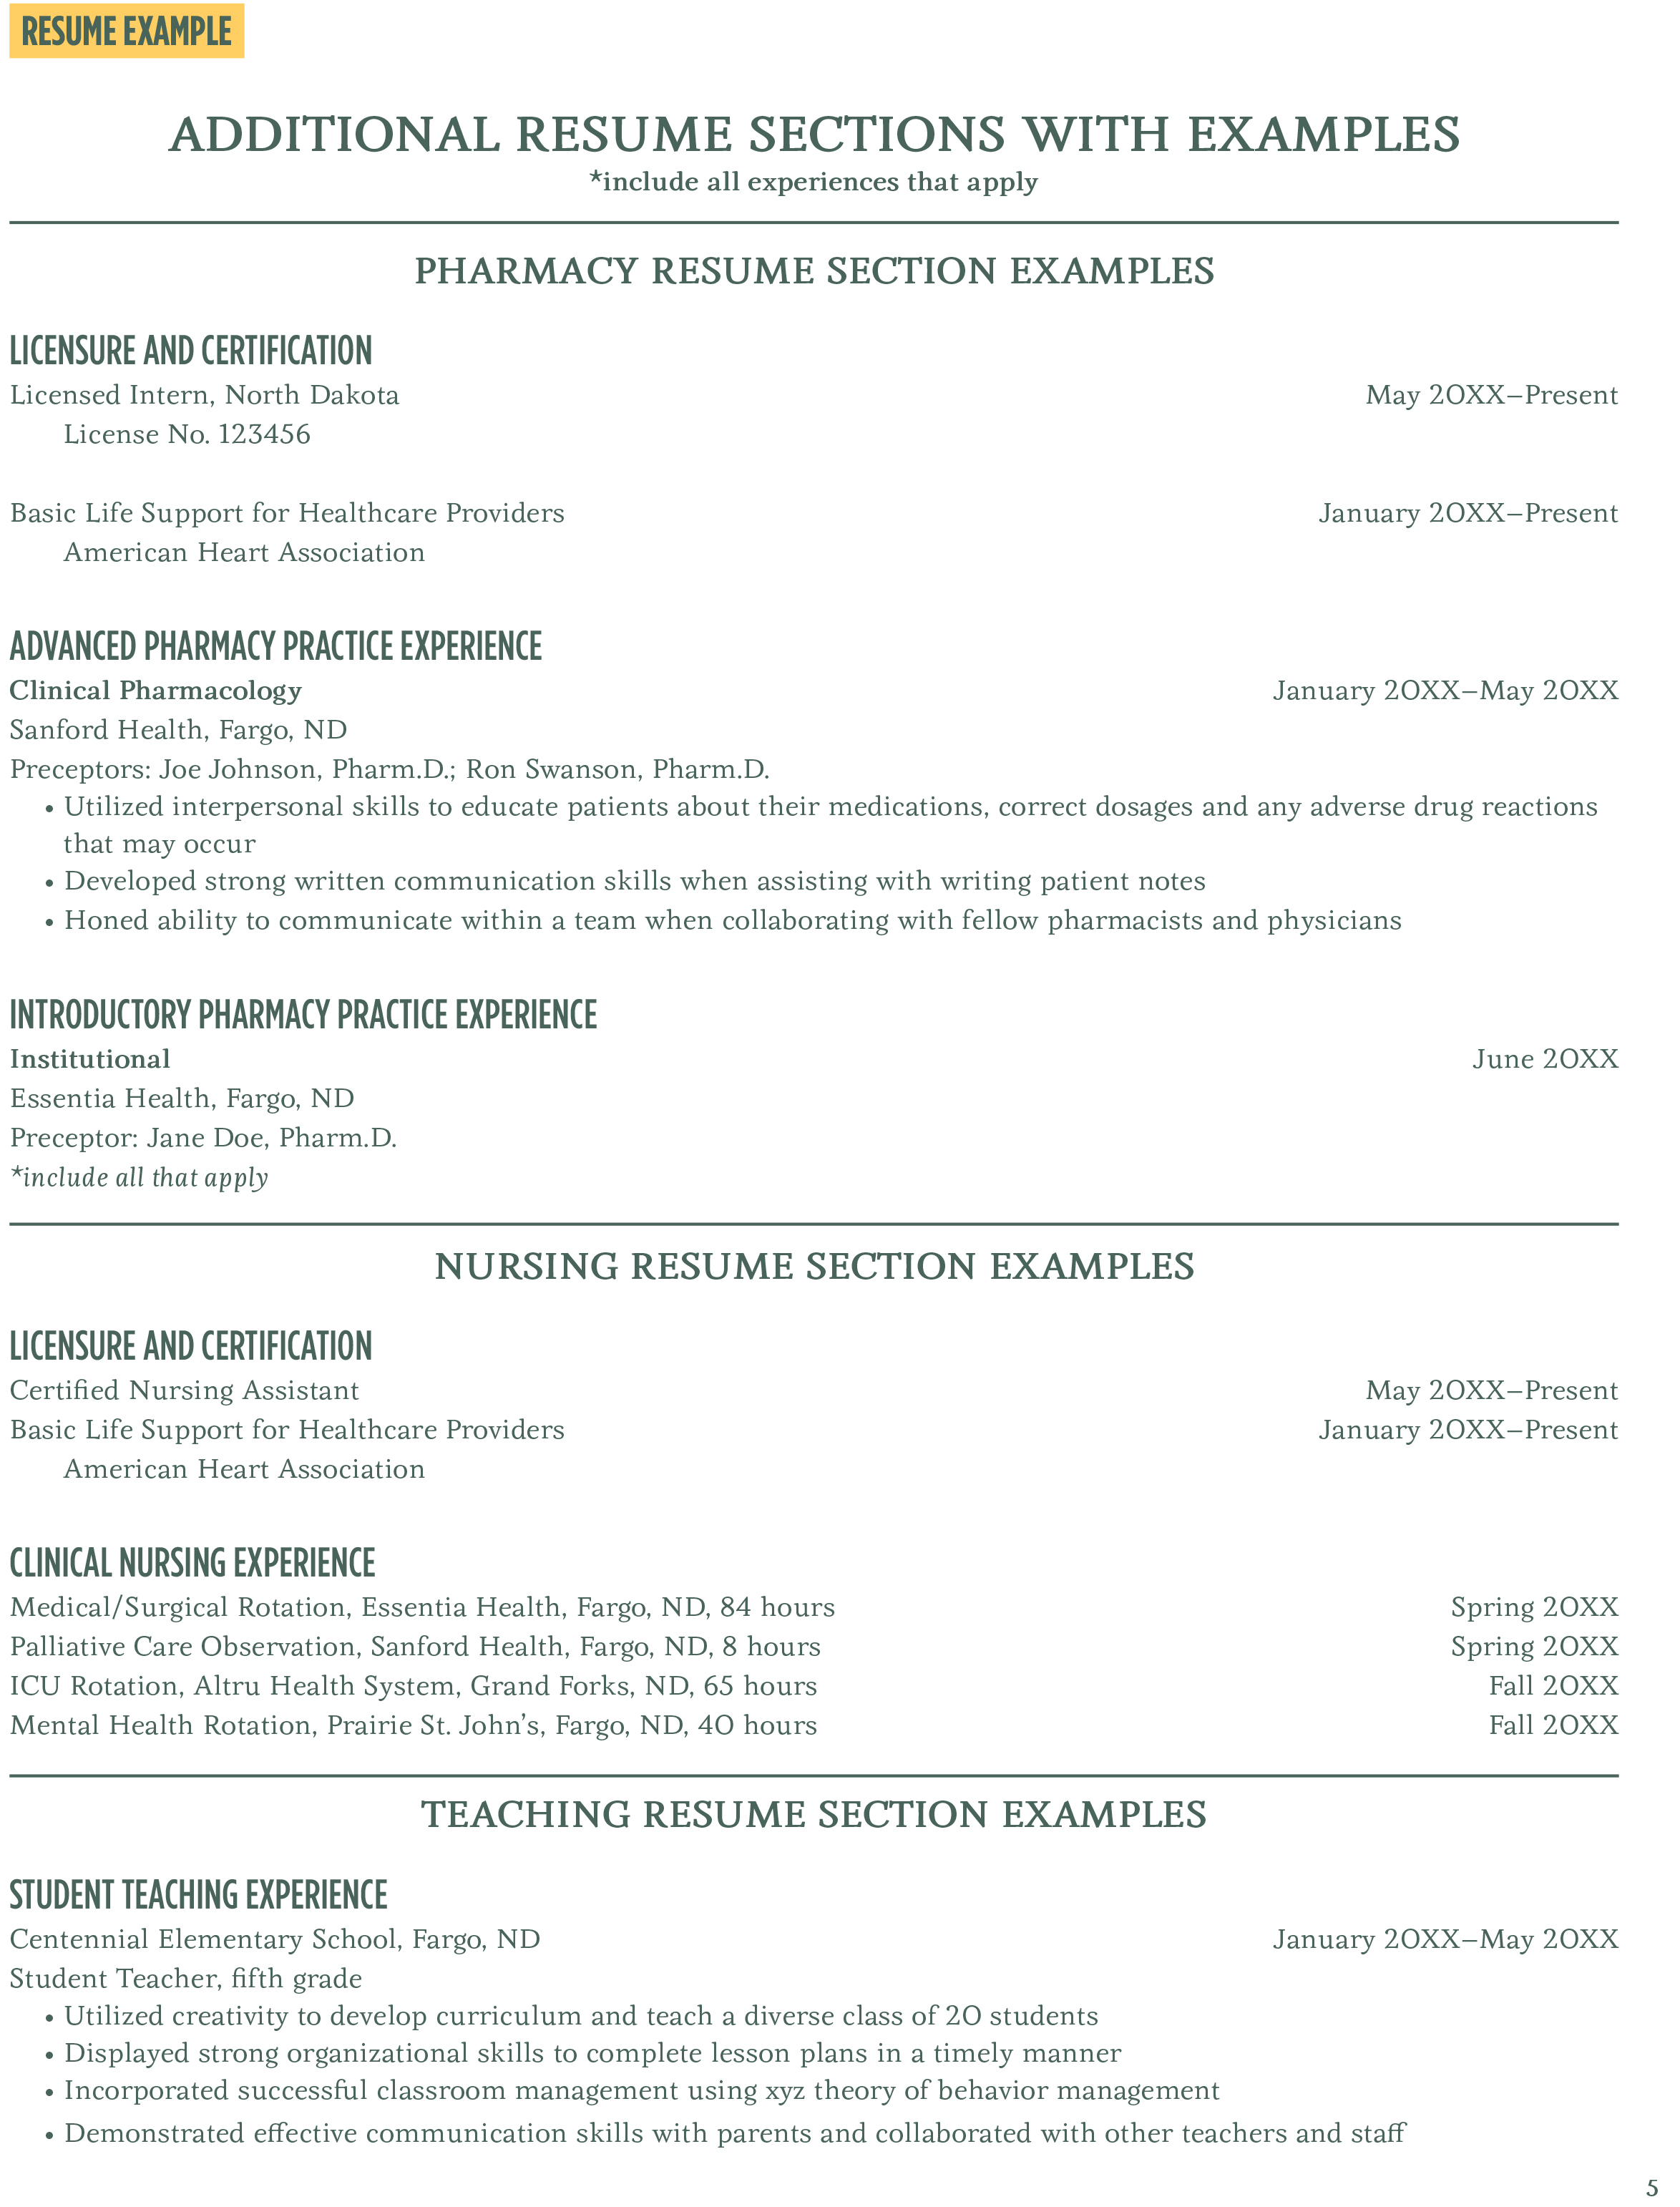 Additional Resume Sections With Examples U2013 Career Center U2013 North Dakota  State University